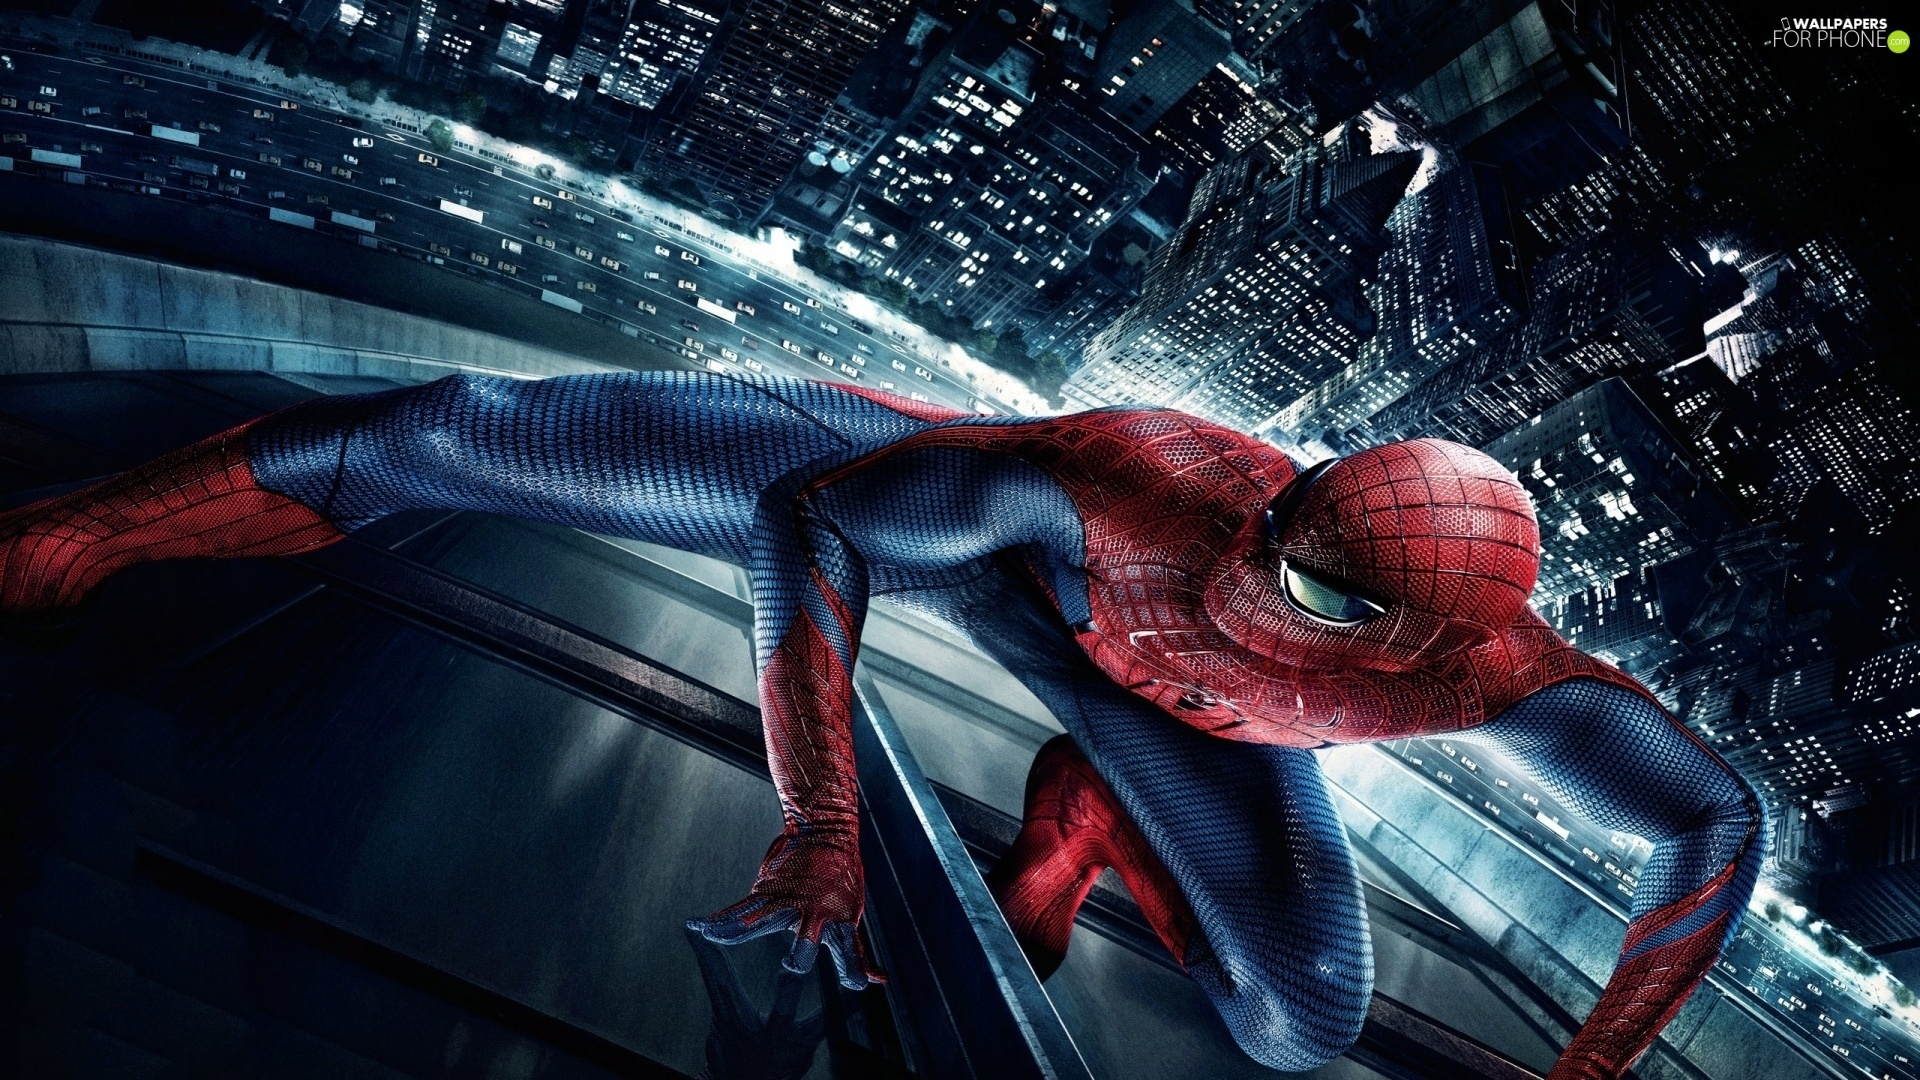 Spiderman, Amazing Spider-Man